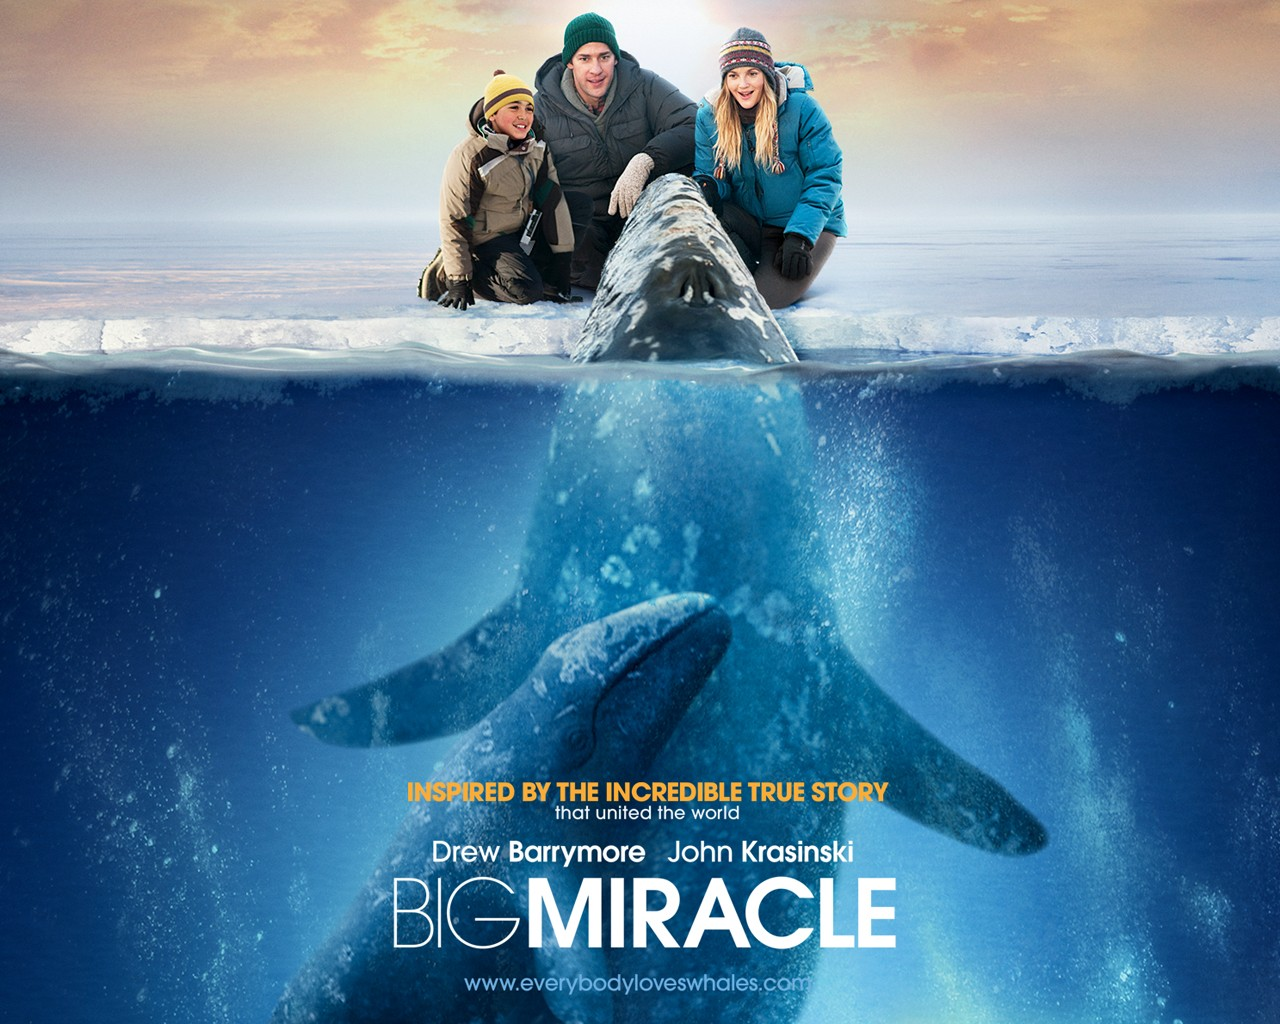 Movie Moment: Big Miracle